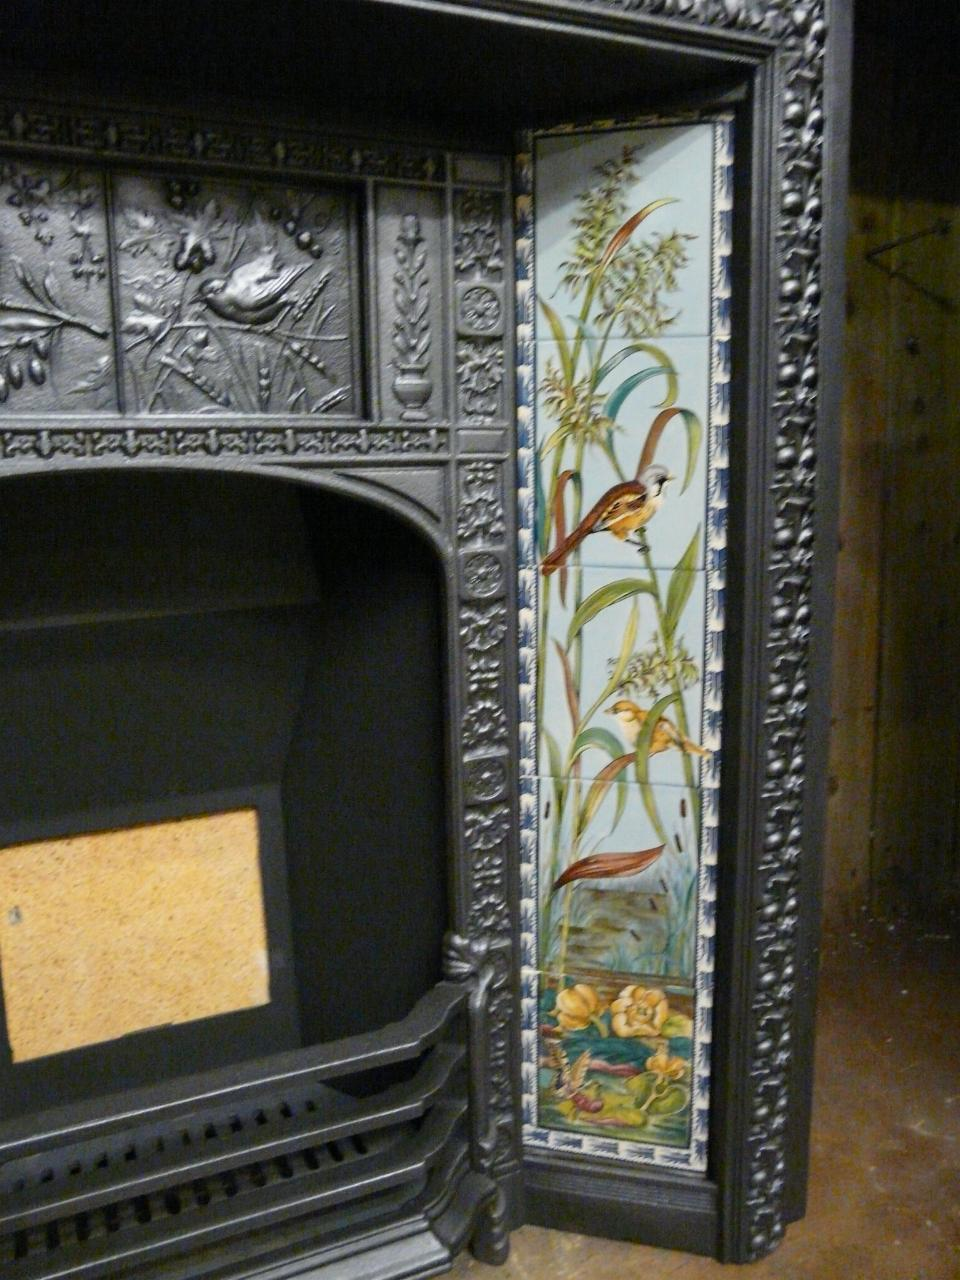 Reproduction Fireplace Tiles - R029 - Old Fireplaces